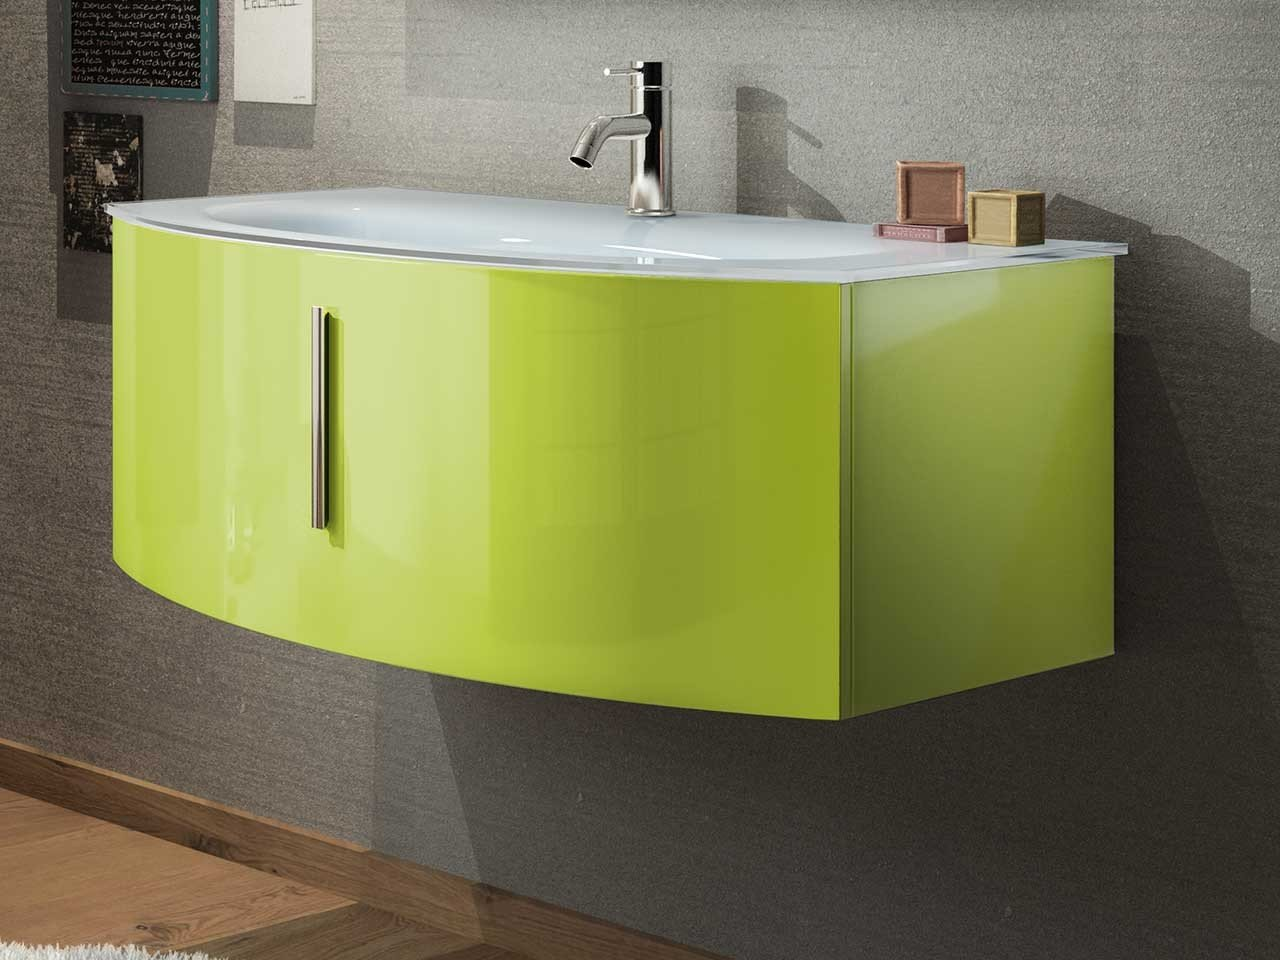 JOLLY COLOR 90 CURVED CABINET 88.5x49 GREEN - Iperceramica